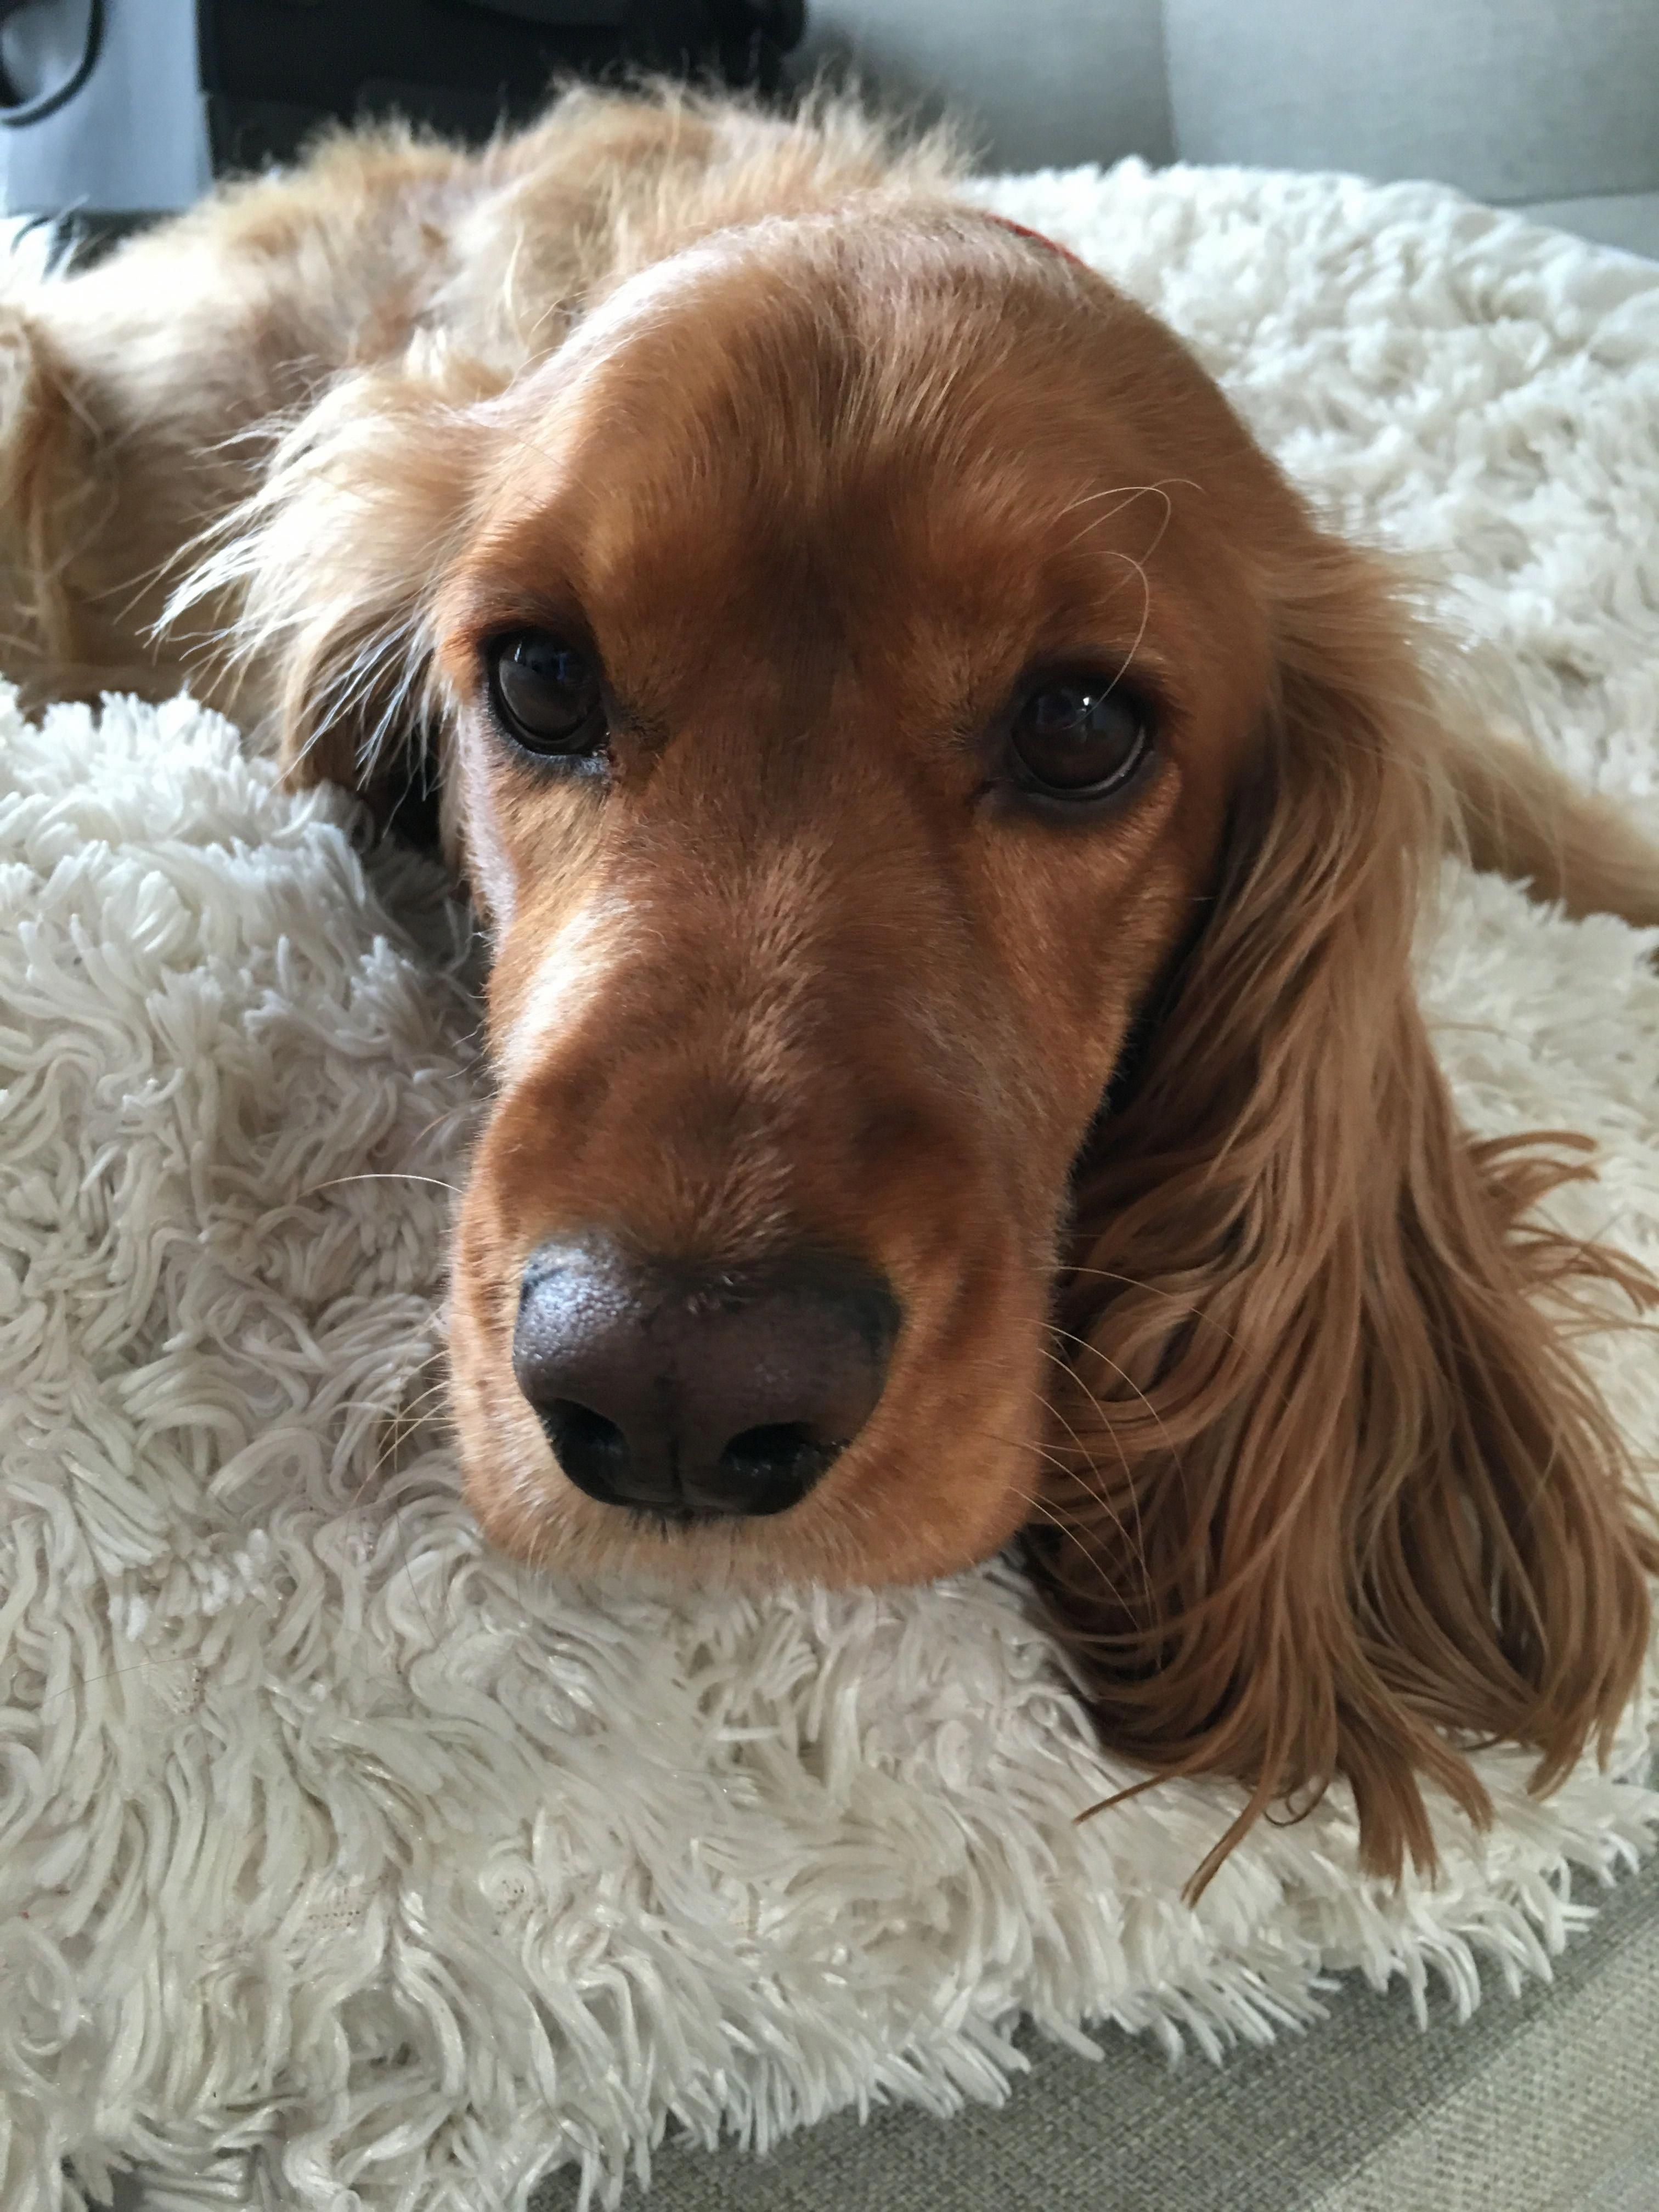 Fieldcockerspaniels Cocker Spaniel Dog Beautiful Dogs Cute Dogs And Puppies